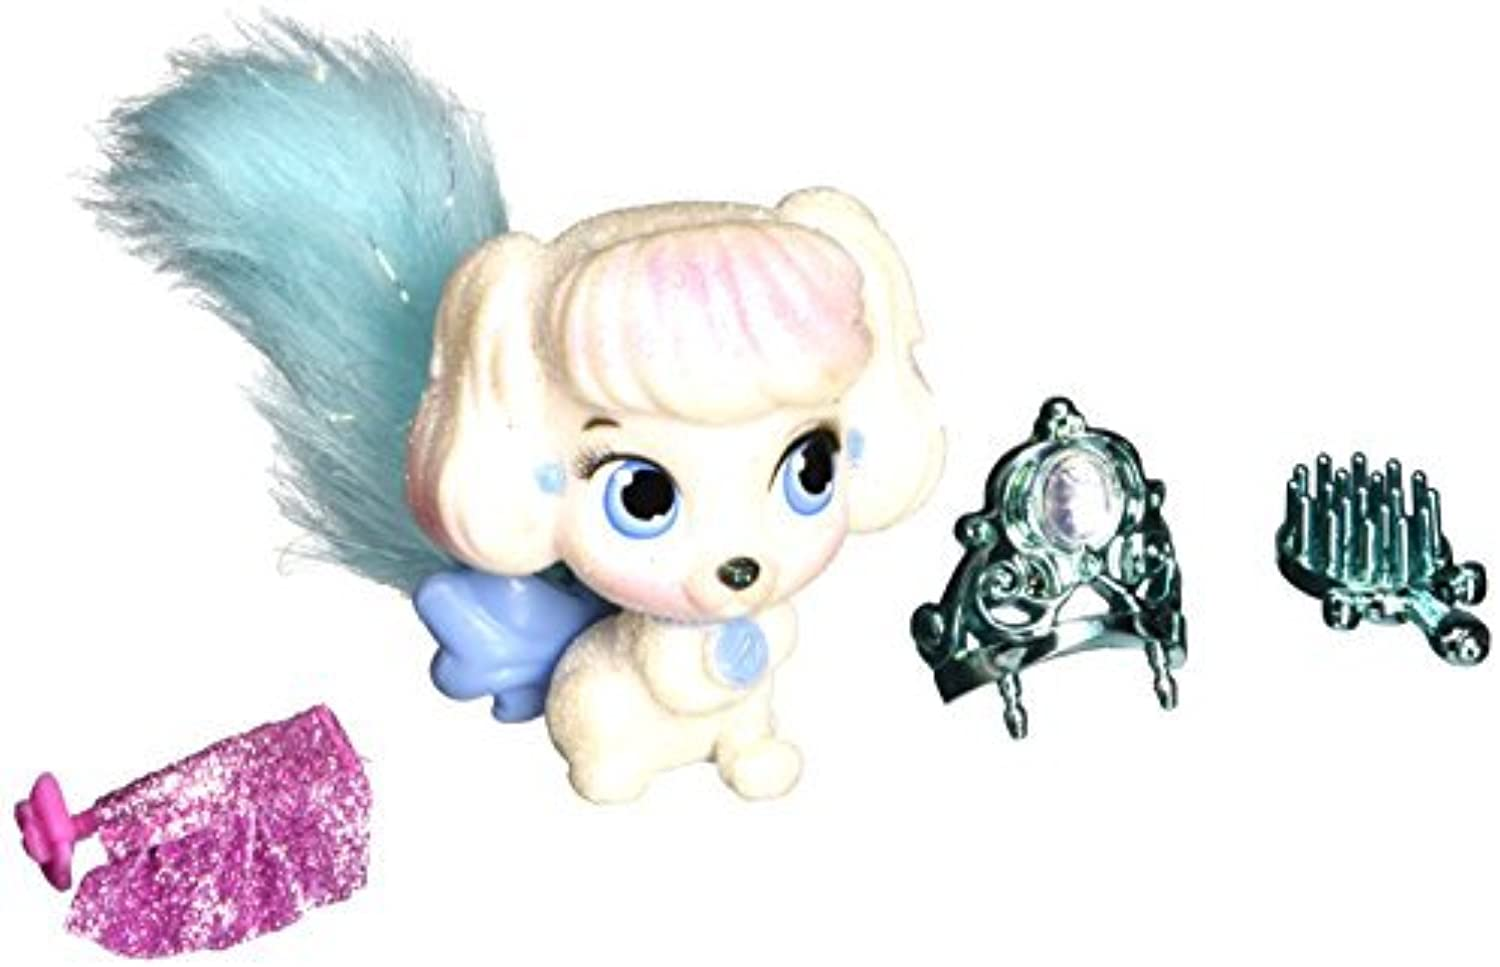 Disney Princess Palace Pets Glitzy Glitter, Cinderella's Puppy Pumpkin by Disney Princess